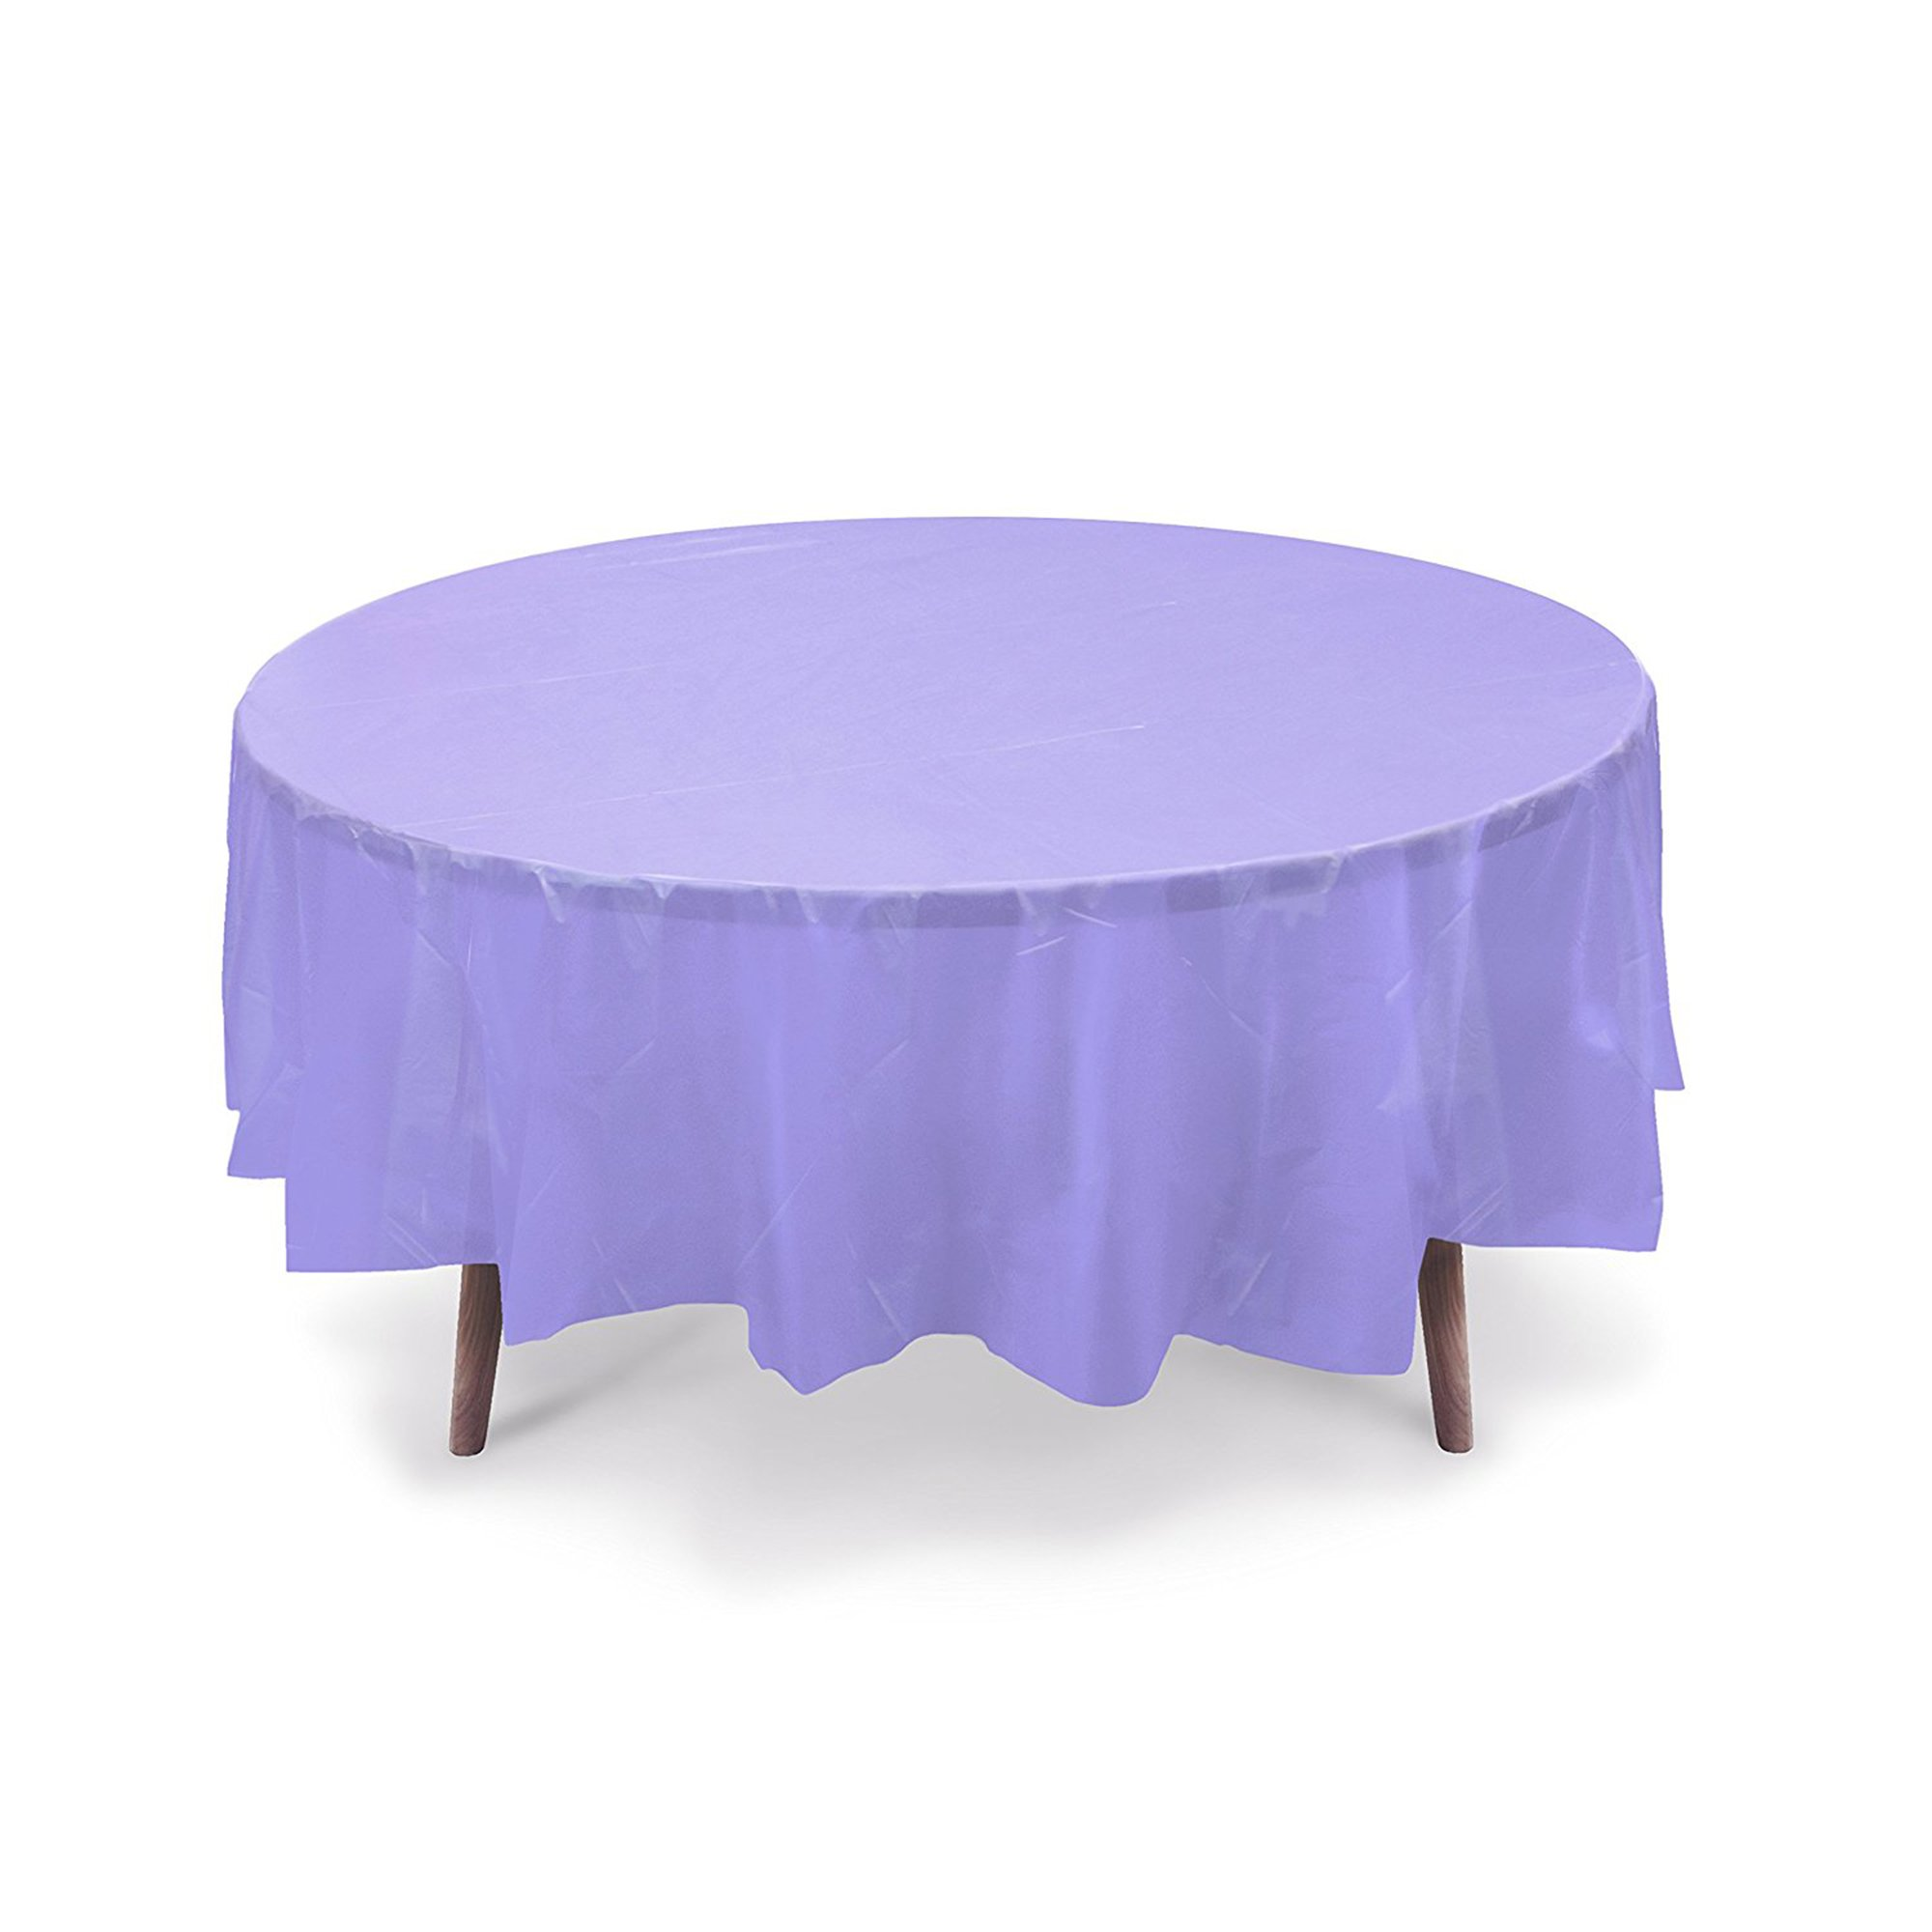 10 PACK 84'' Round Plastic Table Cover, Plastic Table Cloth Reusable (PEVA) (Lavender)